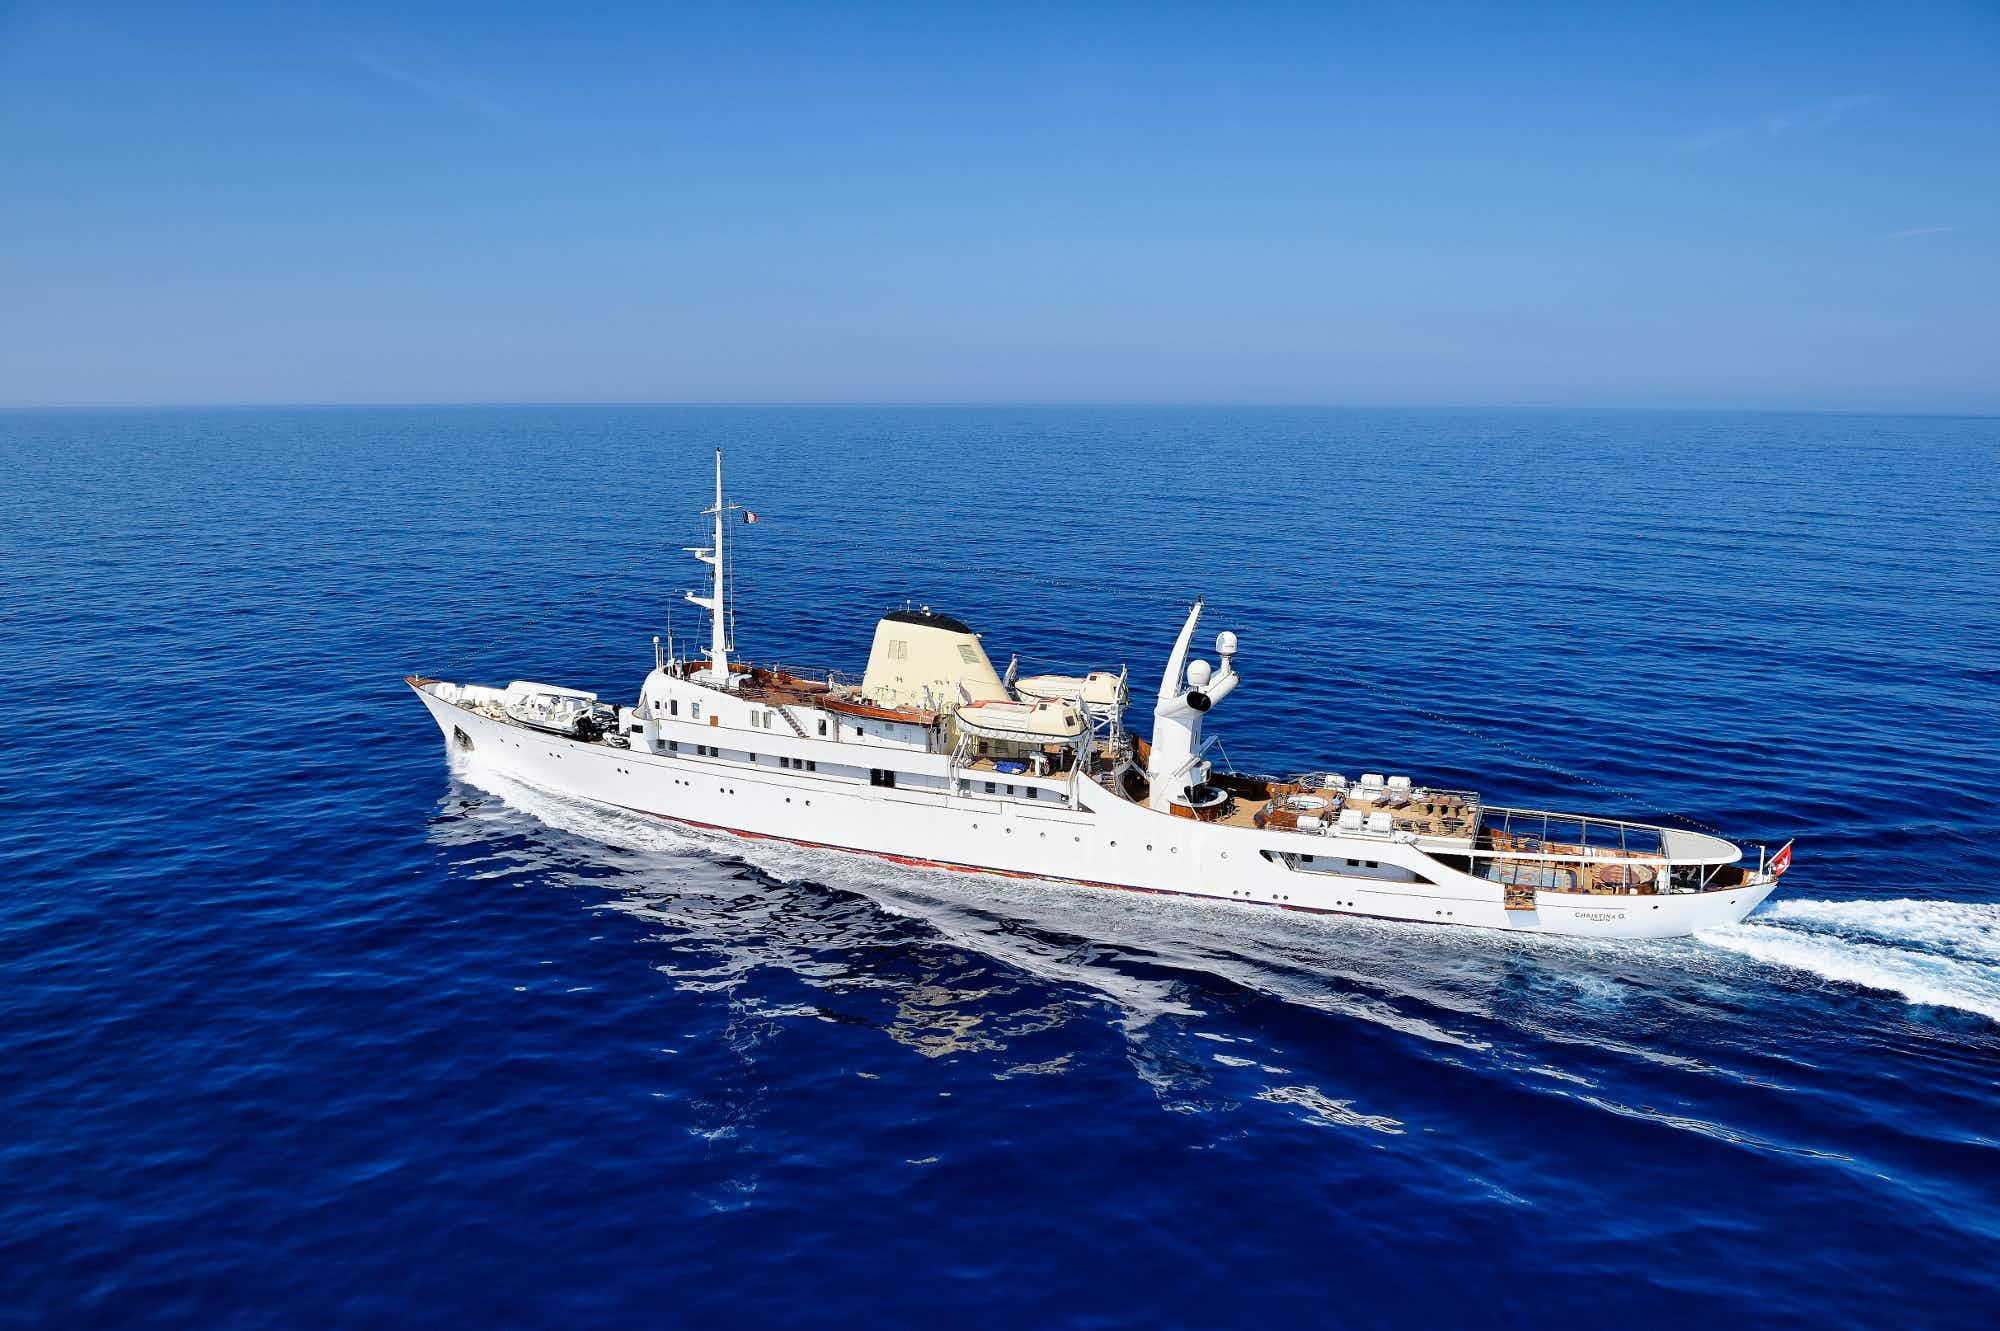 Sail the high seas this summer on Jacqueline Kennedy Onassis' former yacht